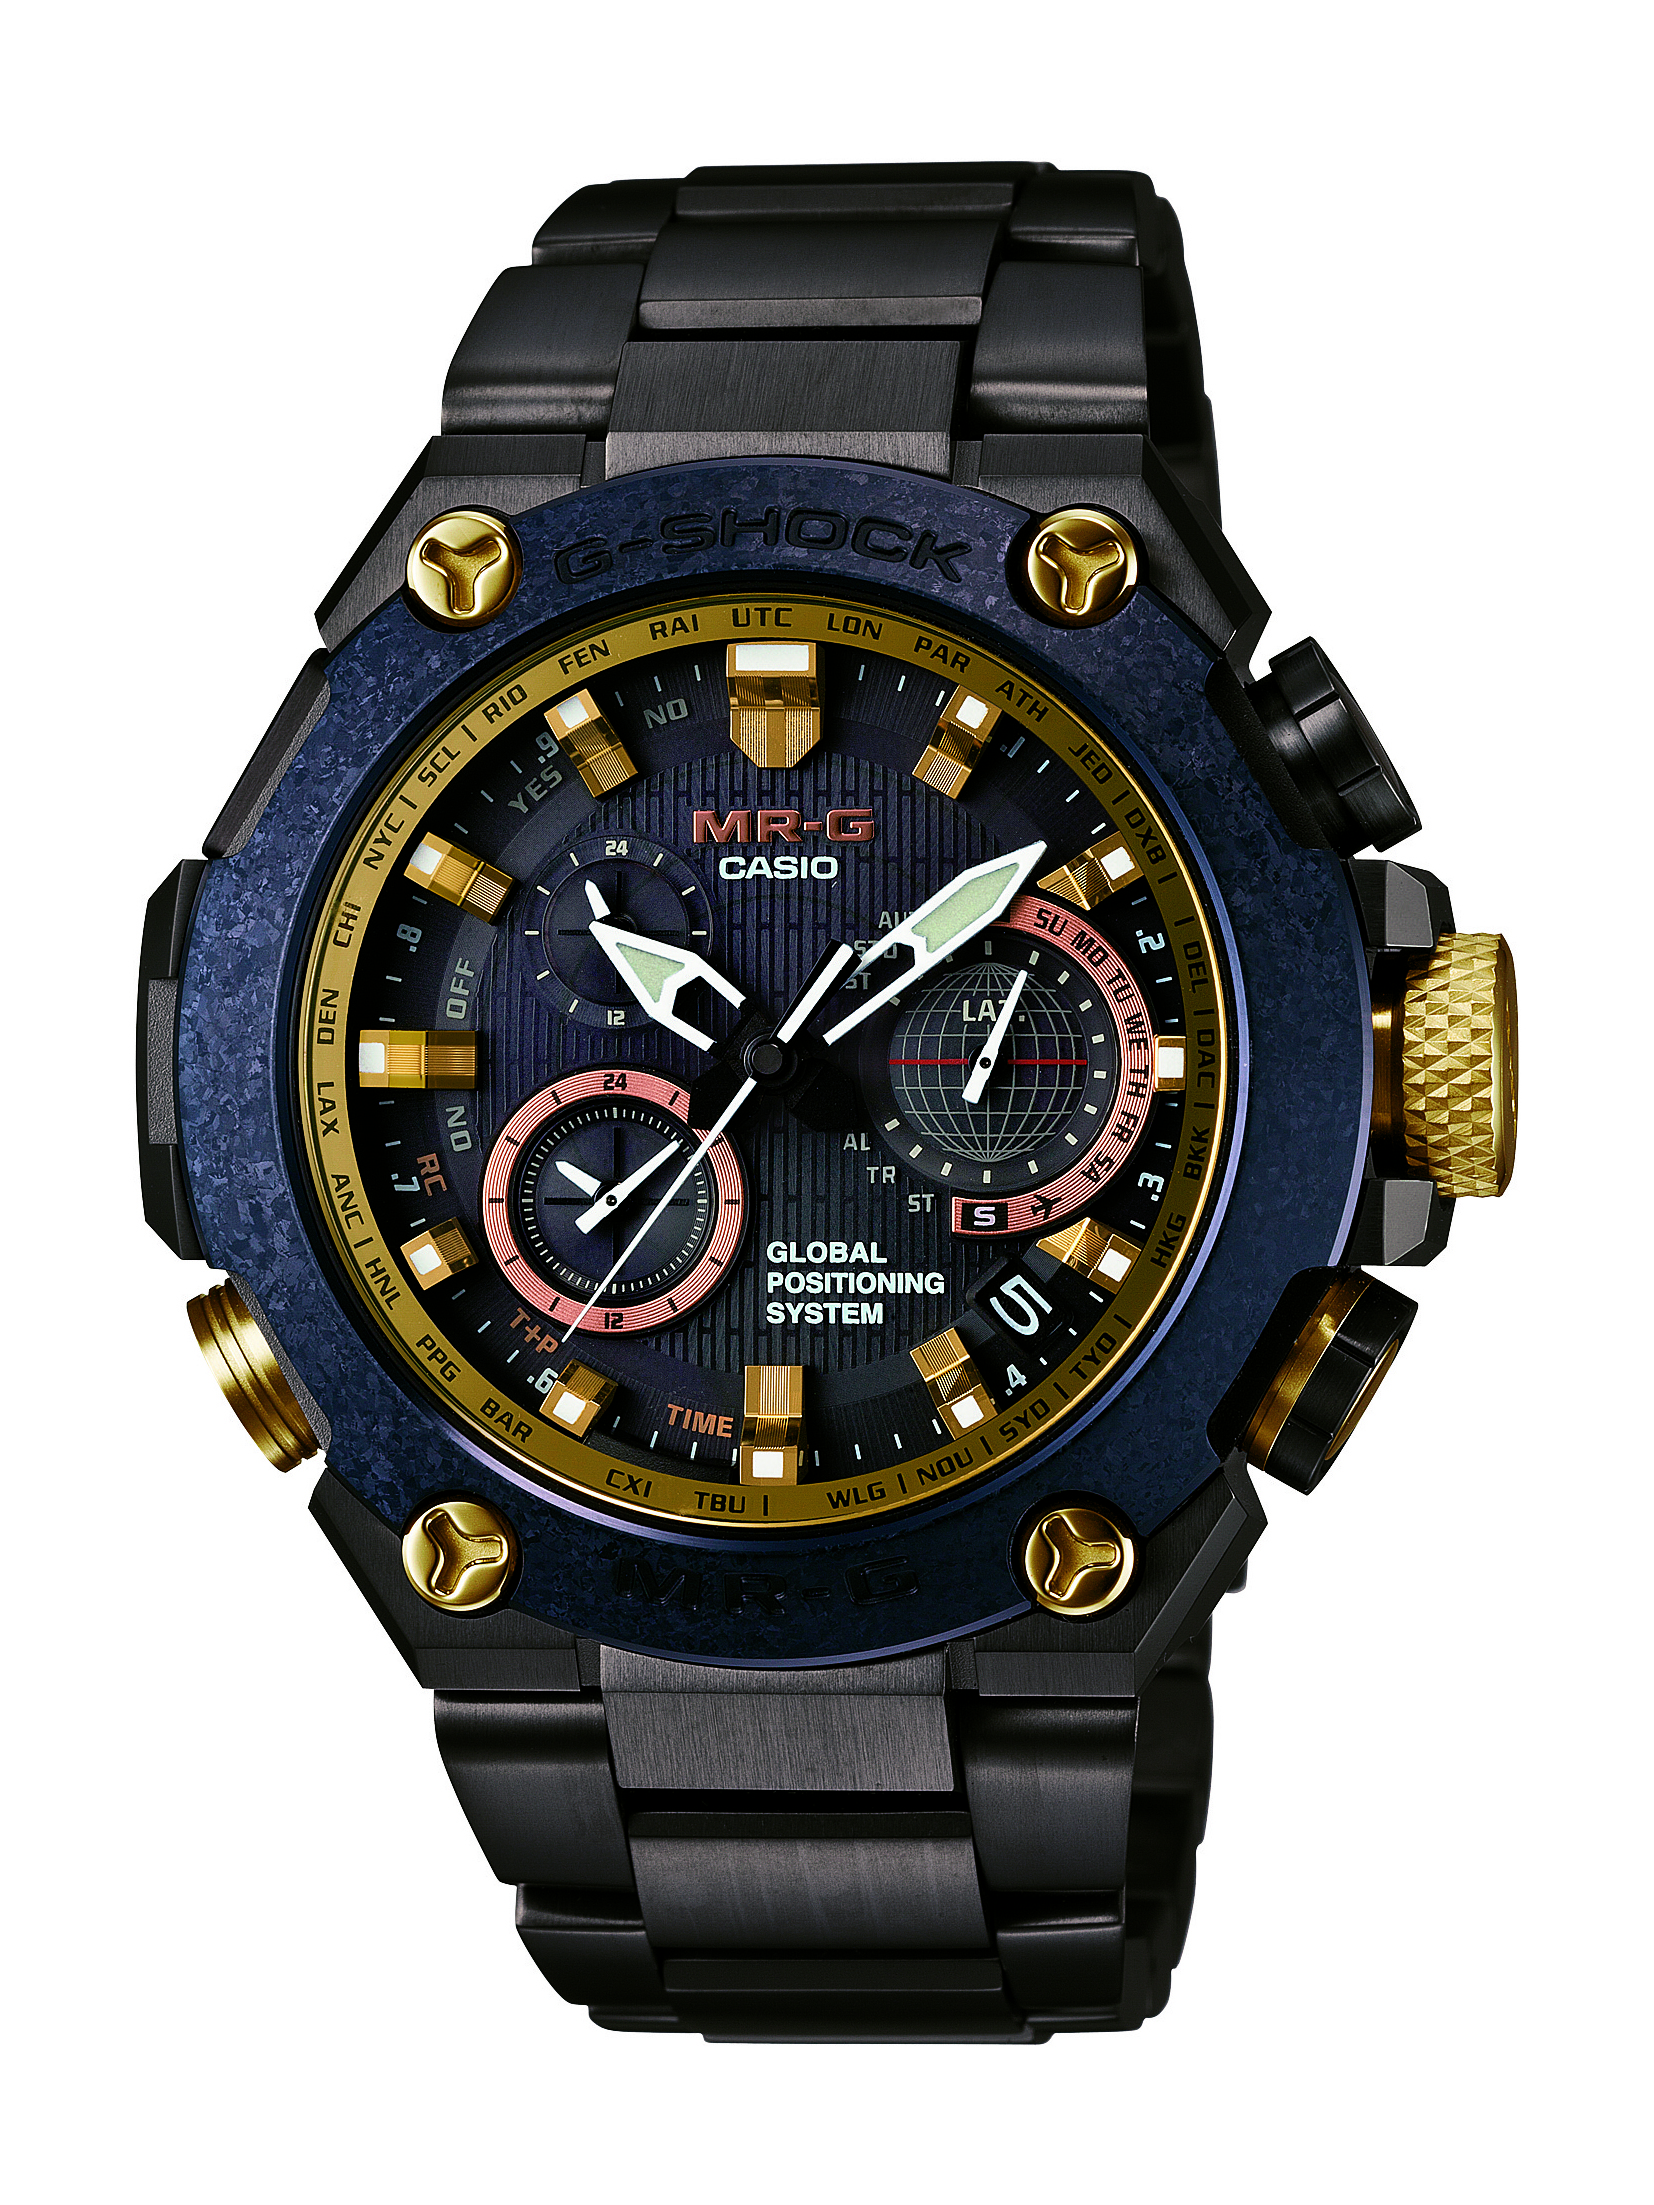 [Official] Casio G-SHOCK Unveils A Basel Special Limited Edition Mr-G Timepiece